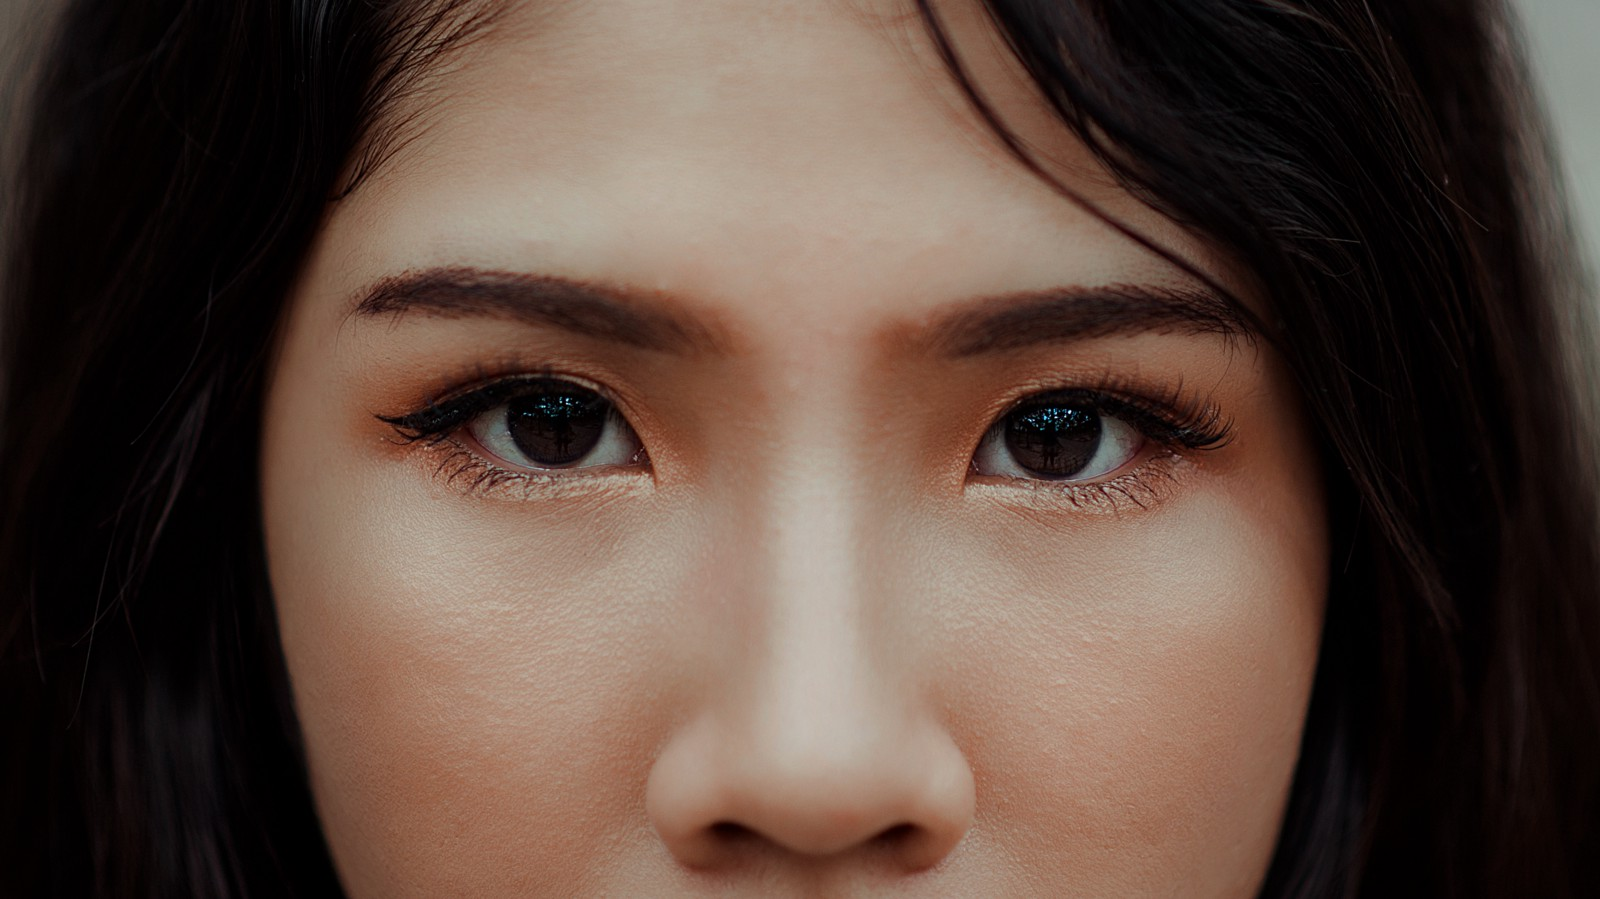 The Beginners Guide To Using Eyebrow Pencils Thread By Zalora